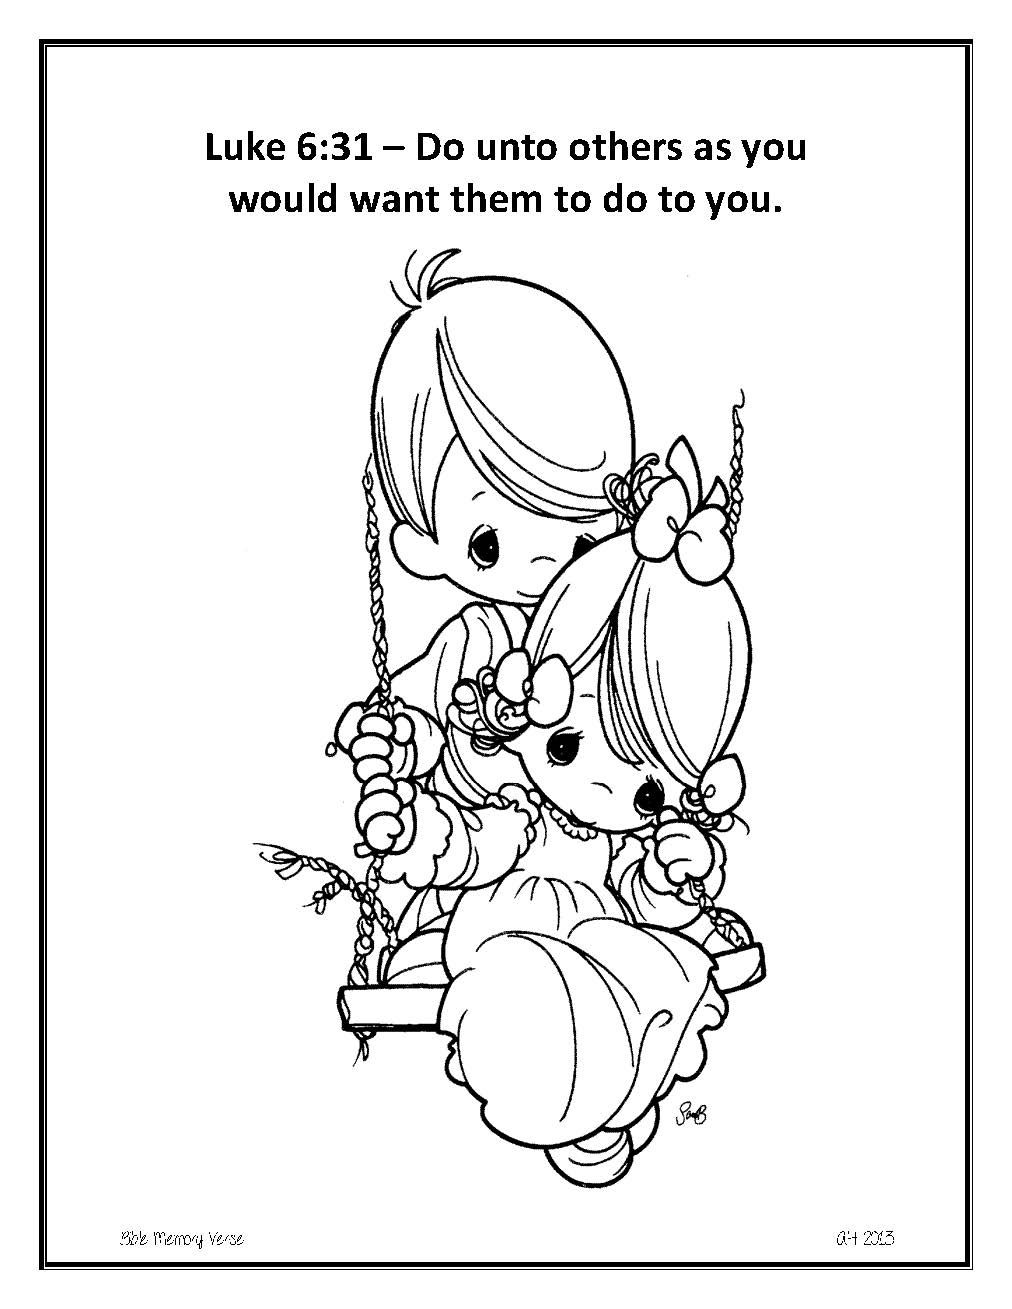 bible memory verse coloring pages - photo#6